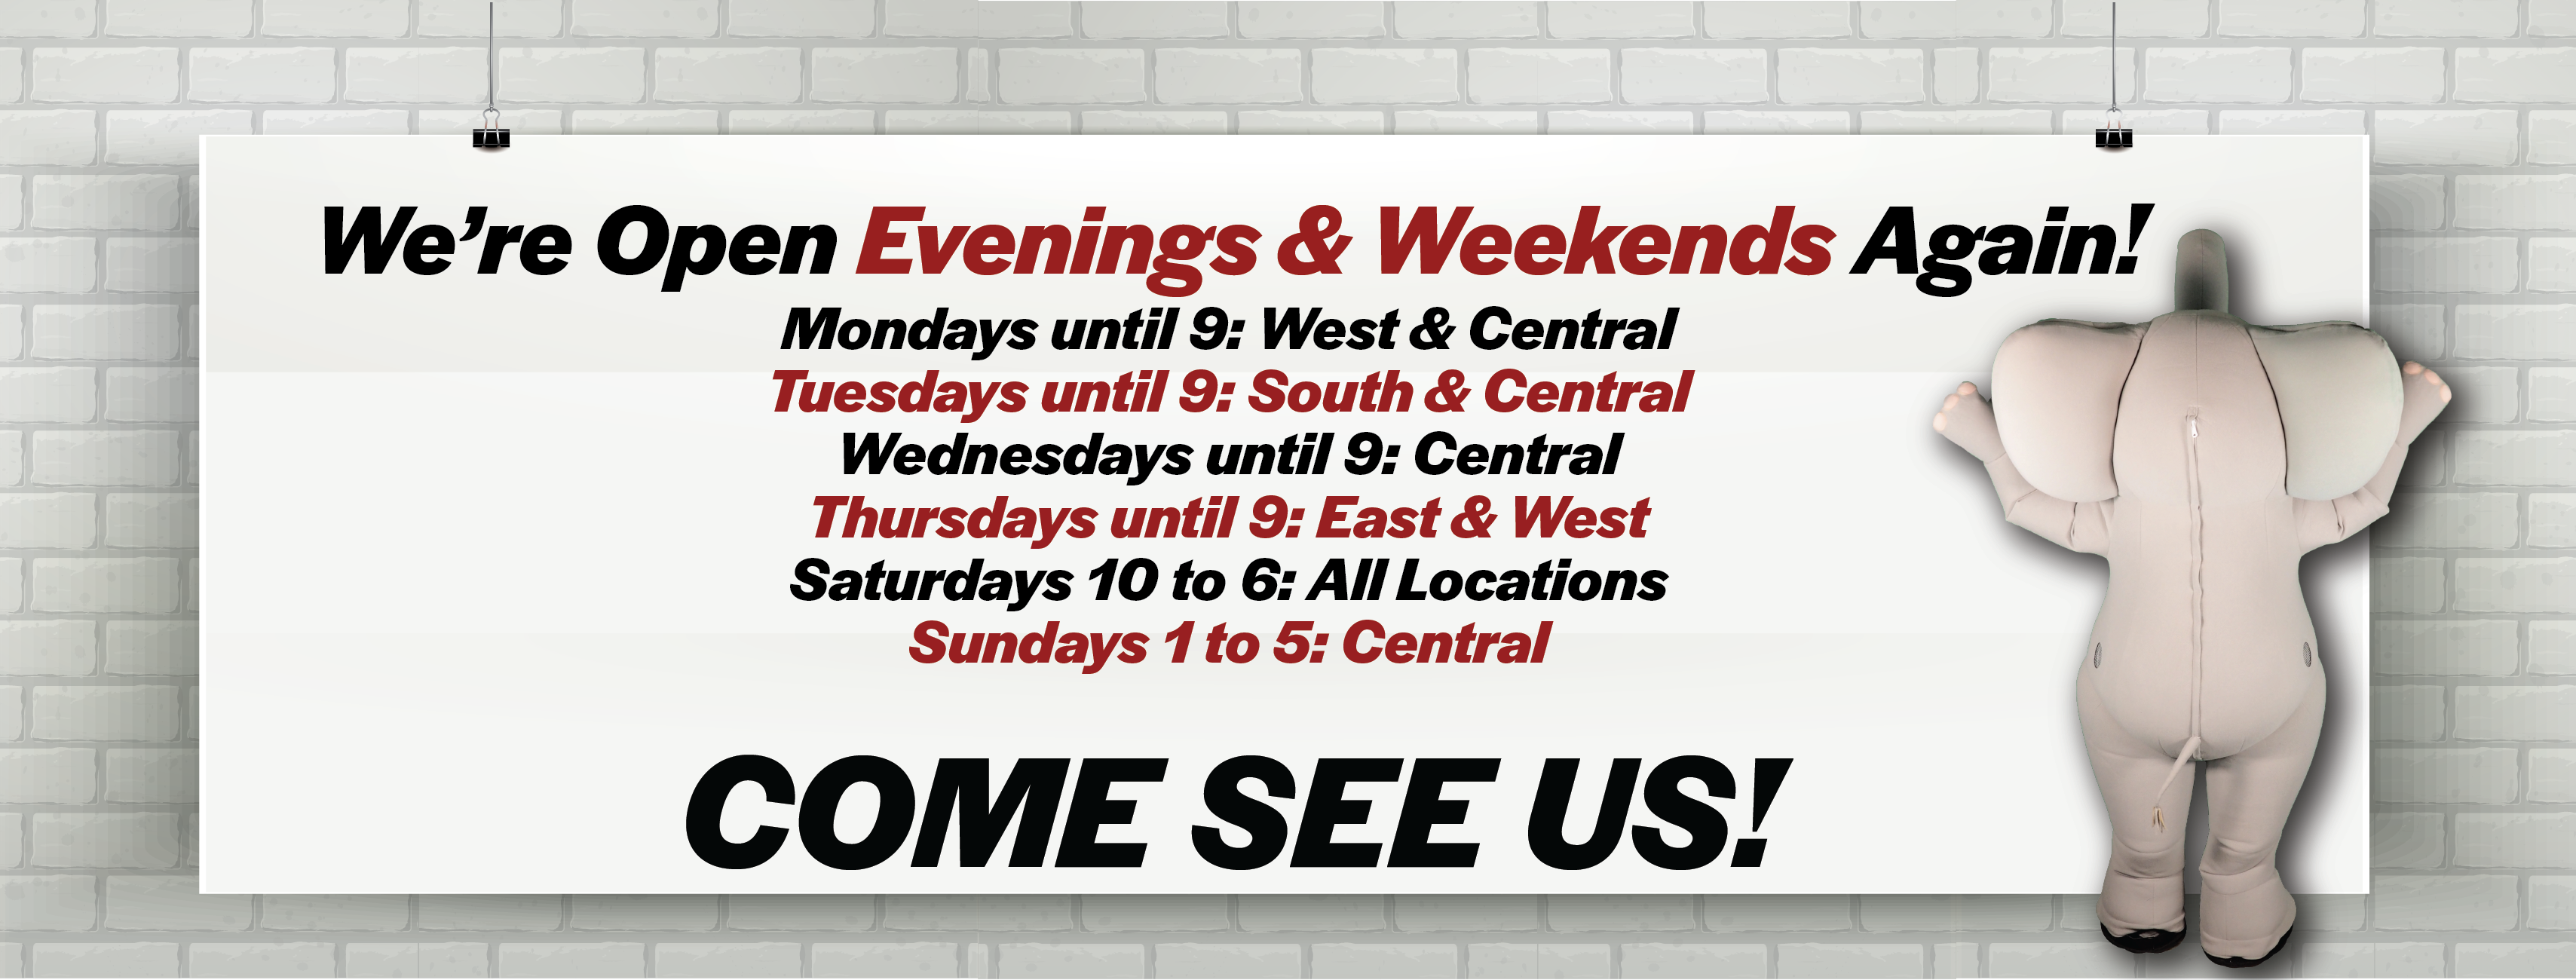 Evening & Weekend Hours Now Available